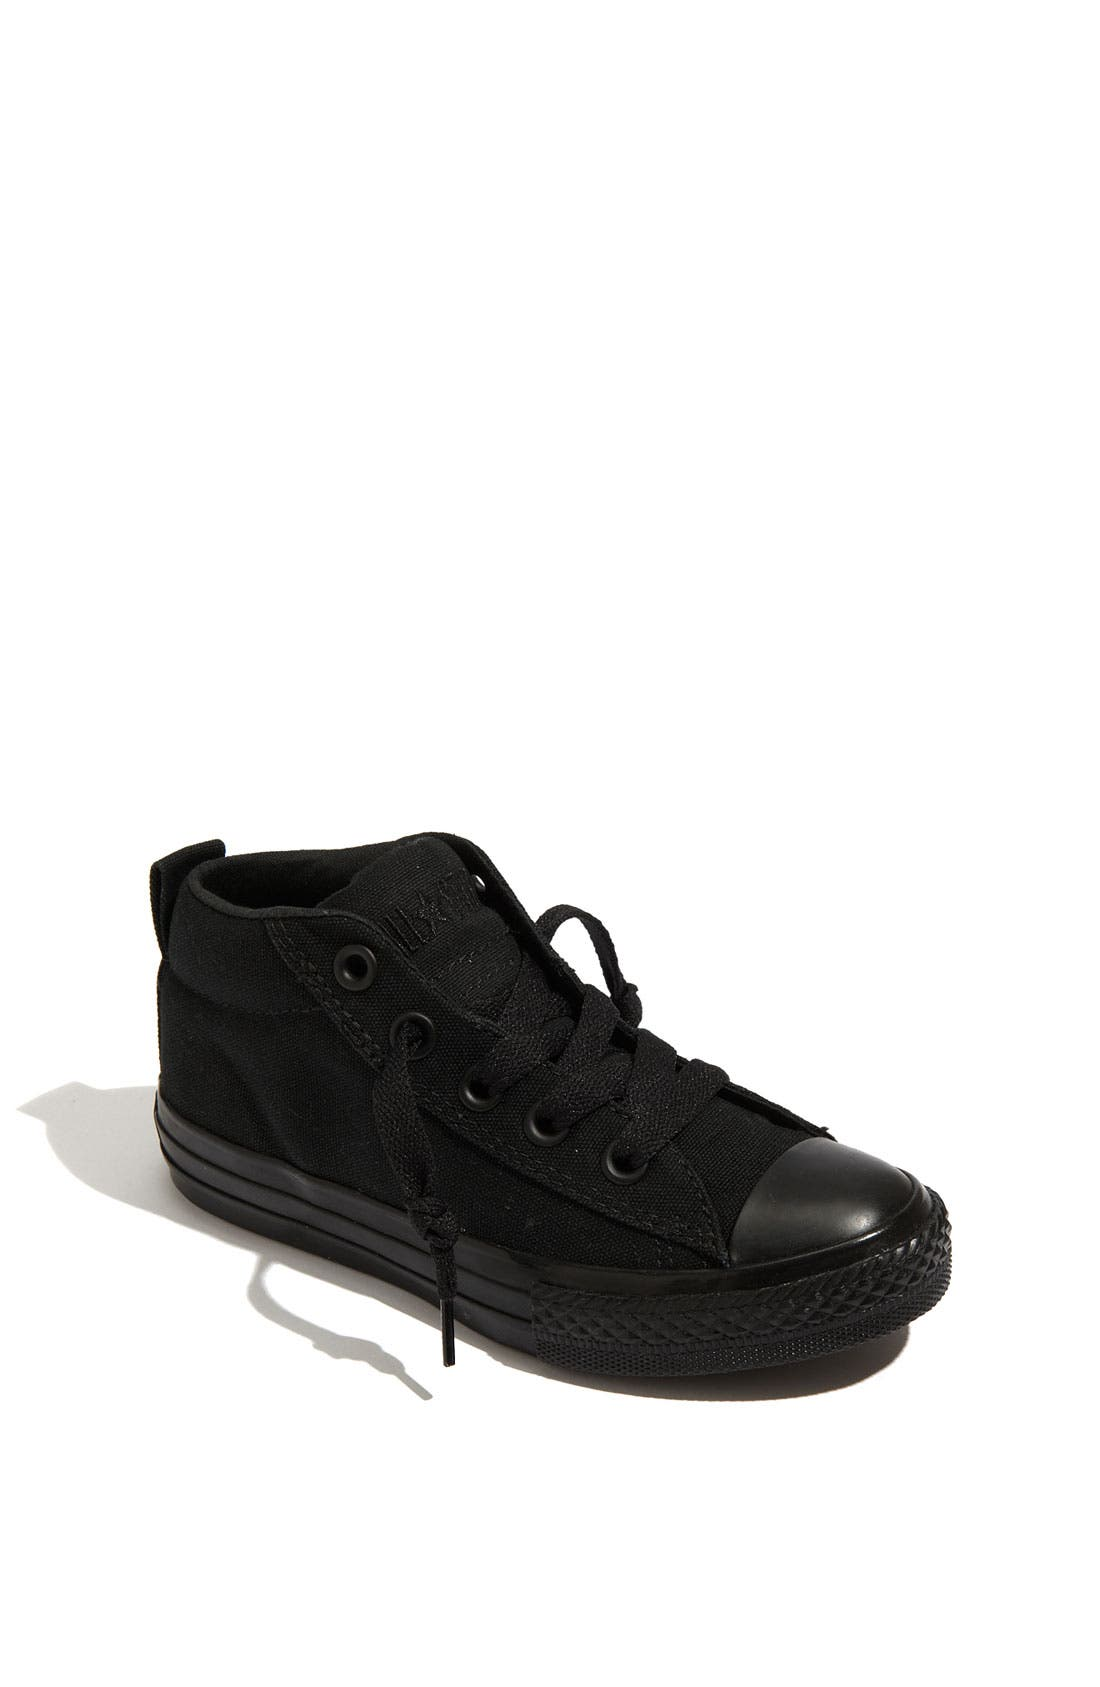 Chuck Taylor<sup>®</sup> 'Street Mid Cab' Slip-On Sneaker,                             Main thumbnail 1, color,                             Black